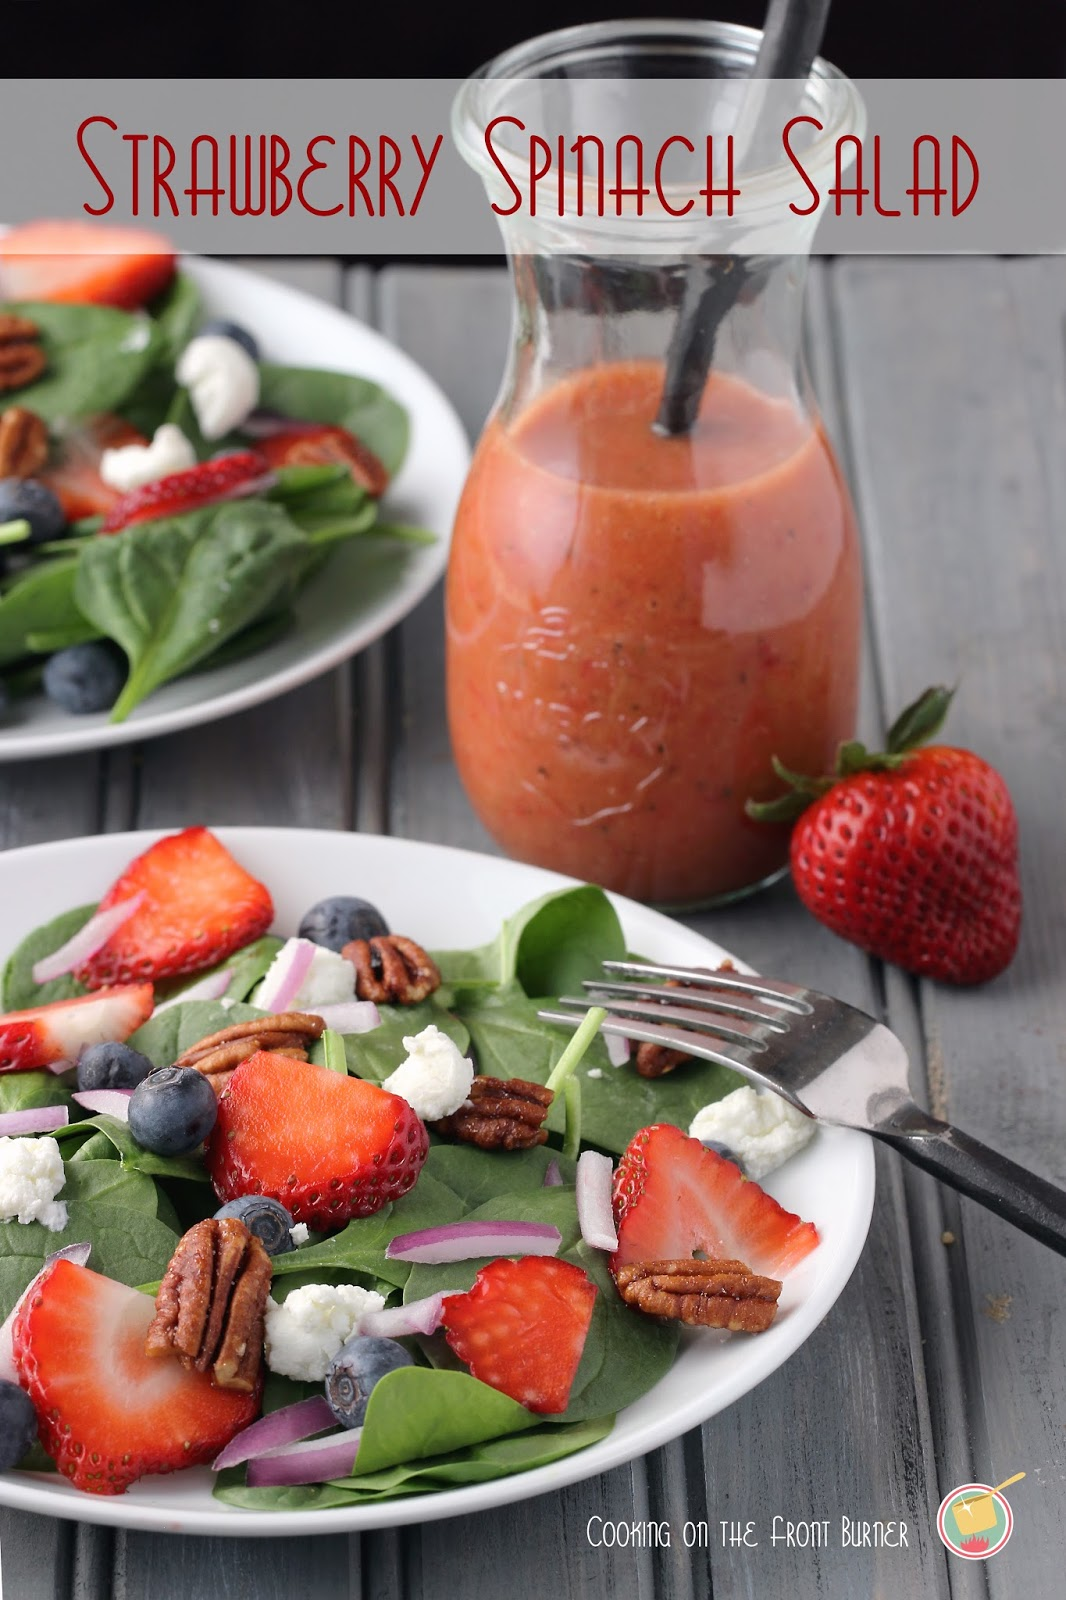 strawberry spinach salad with strawberry vinaigrette dressing